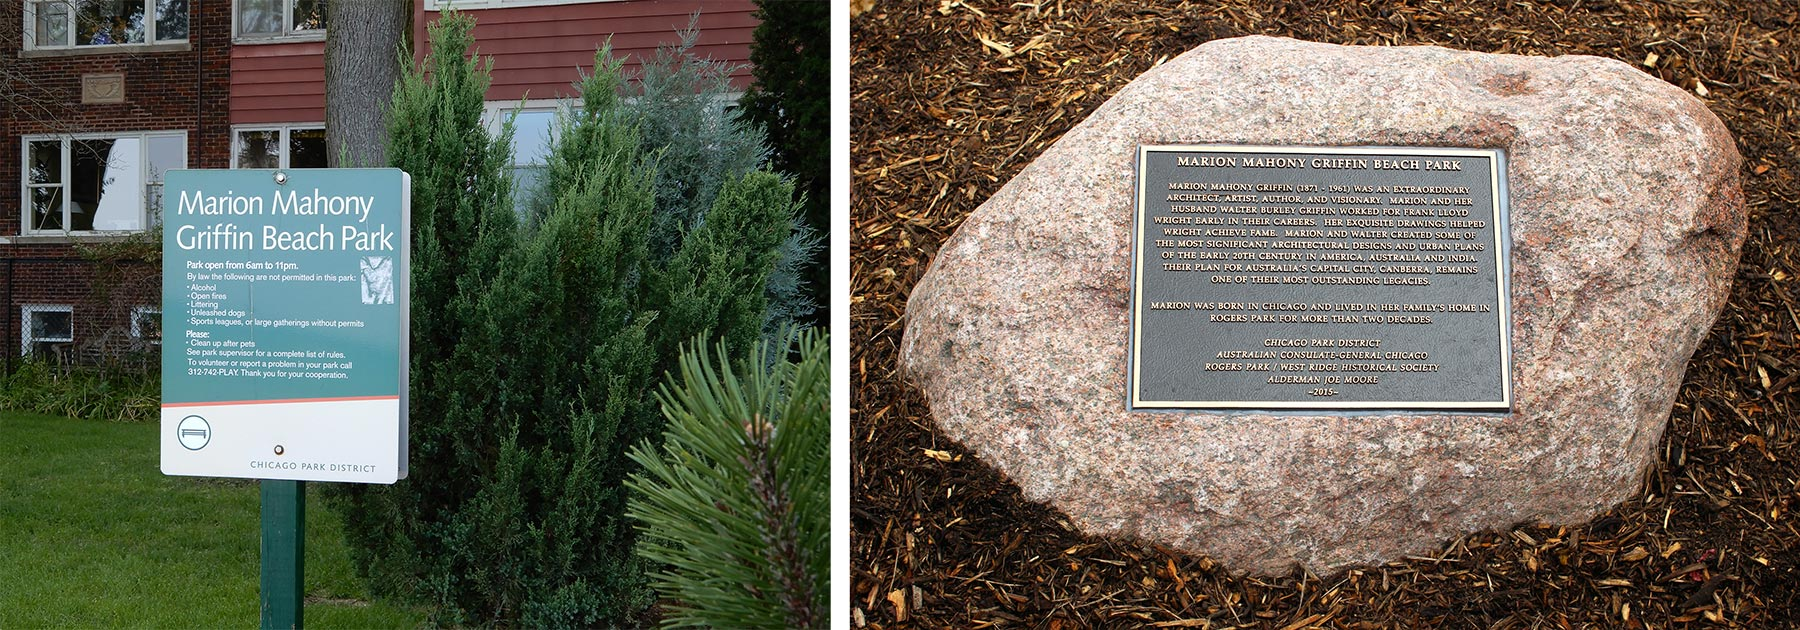 Left:Marion Mahony Griffin Park was dedicated in 2015 after several earlier failed attempts to name a park for her. Right:Boulder in Marion Mahony Griffin Park. Photo by Julia Bachrach.